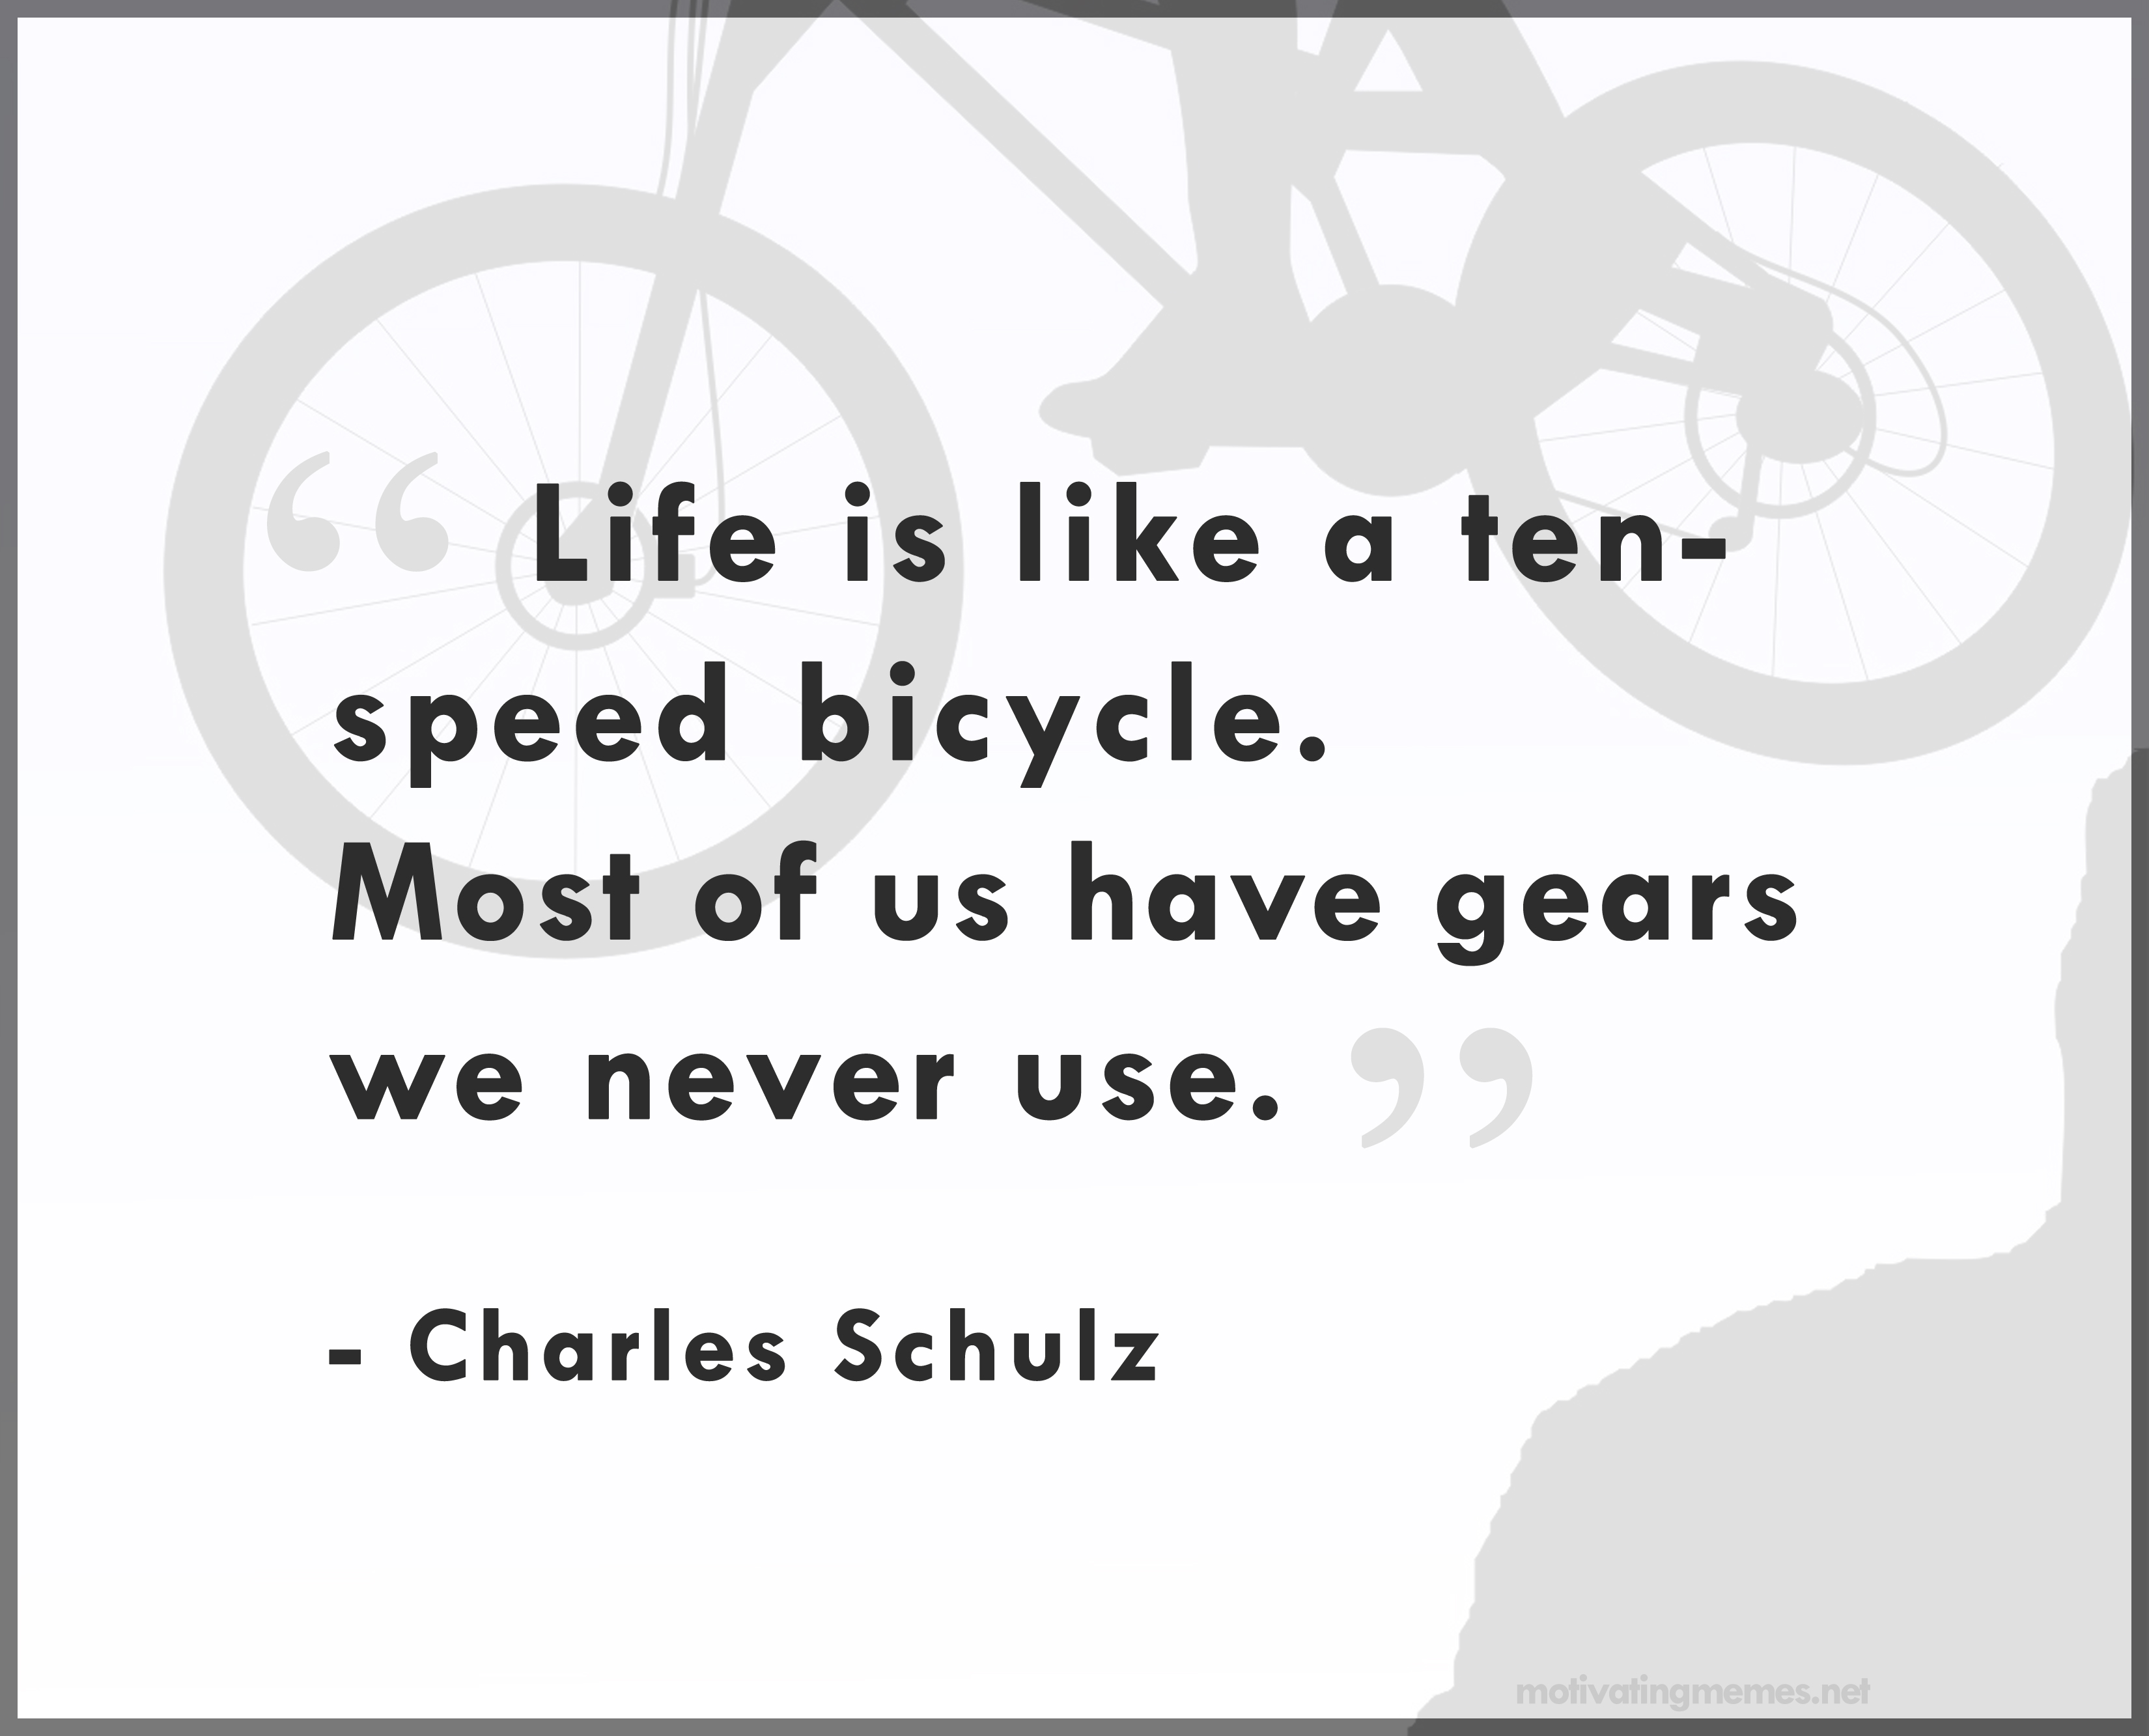 Life is like a ten speed bicycle. Most of us have gears we never use.